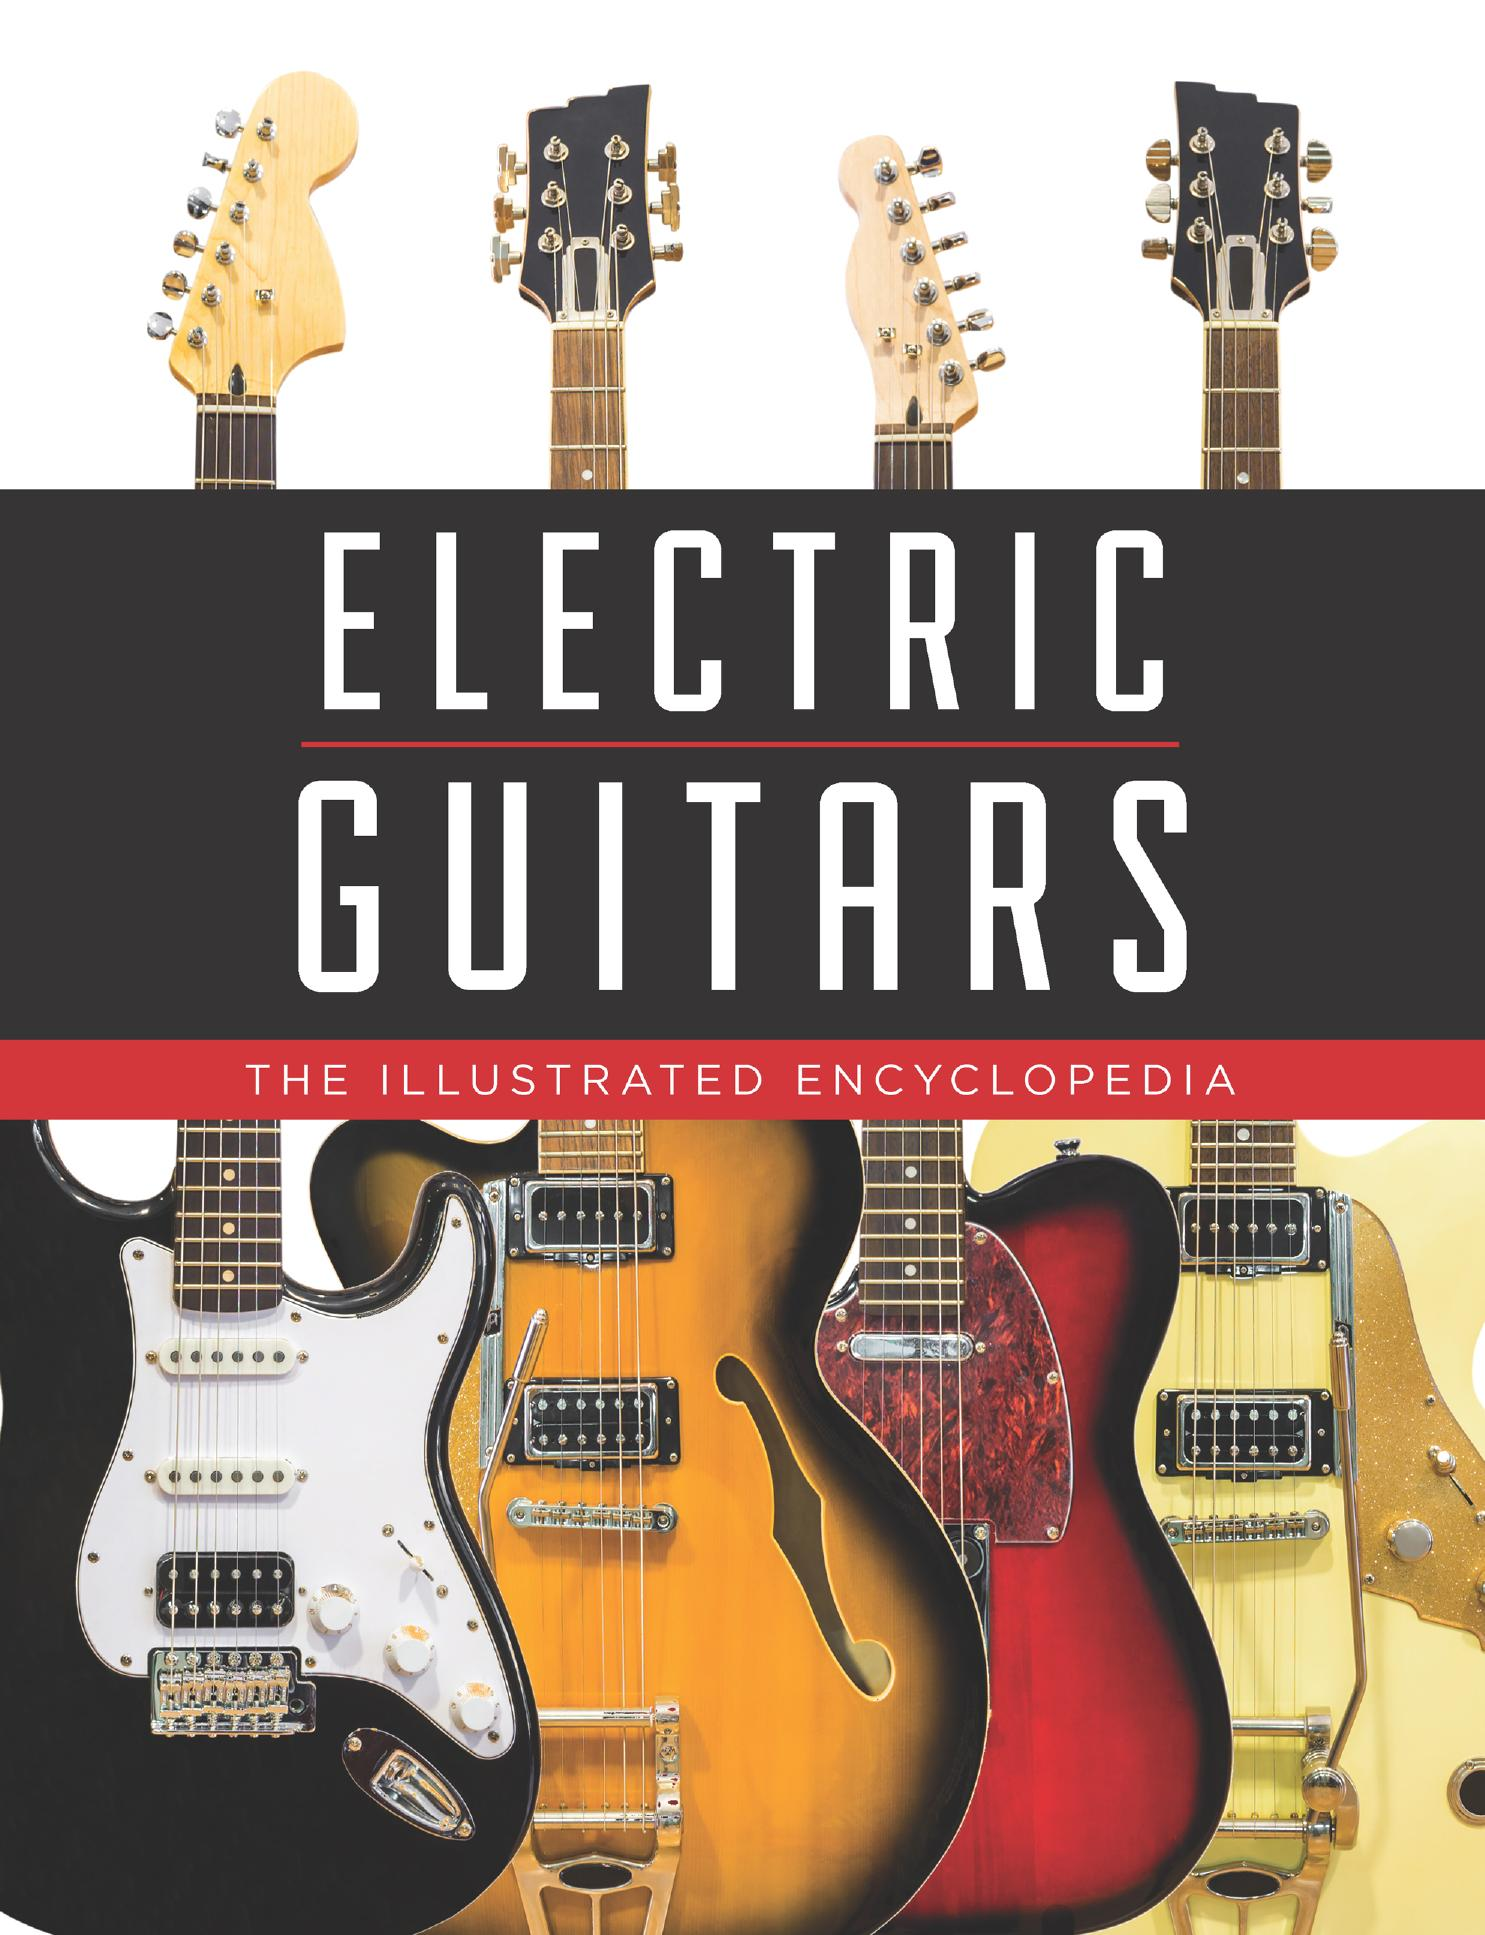 Electric Guitars: The Illustrated Encyclopedia-P2P